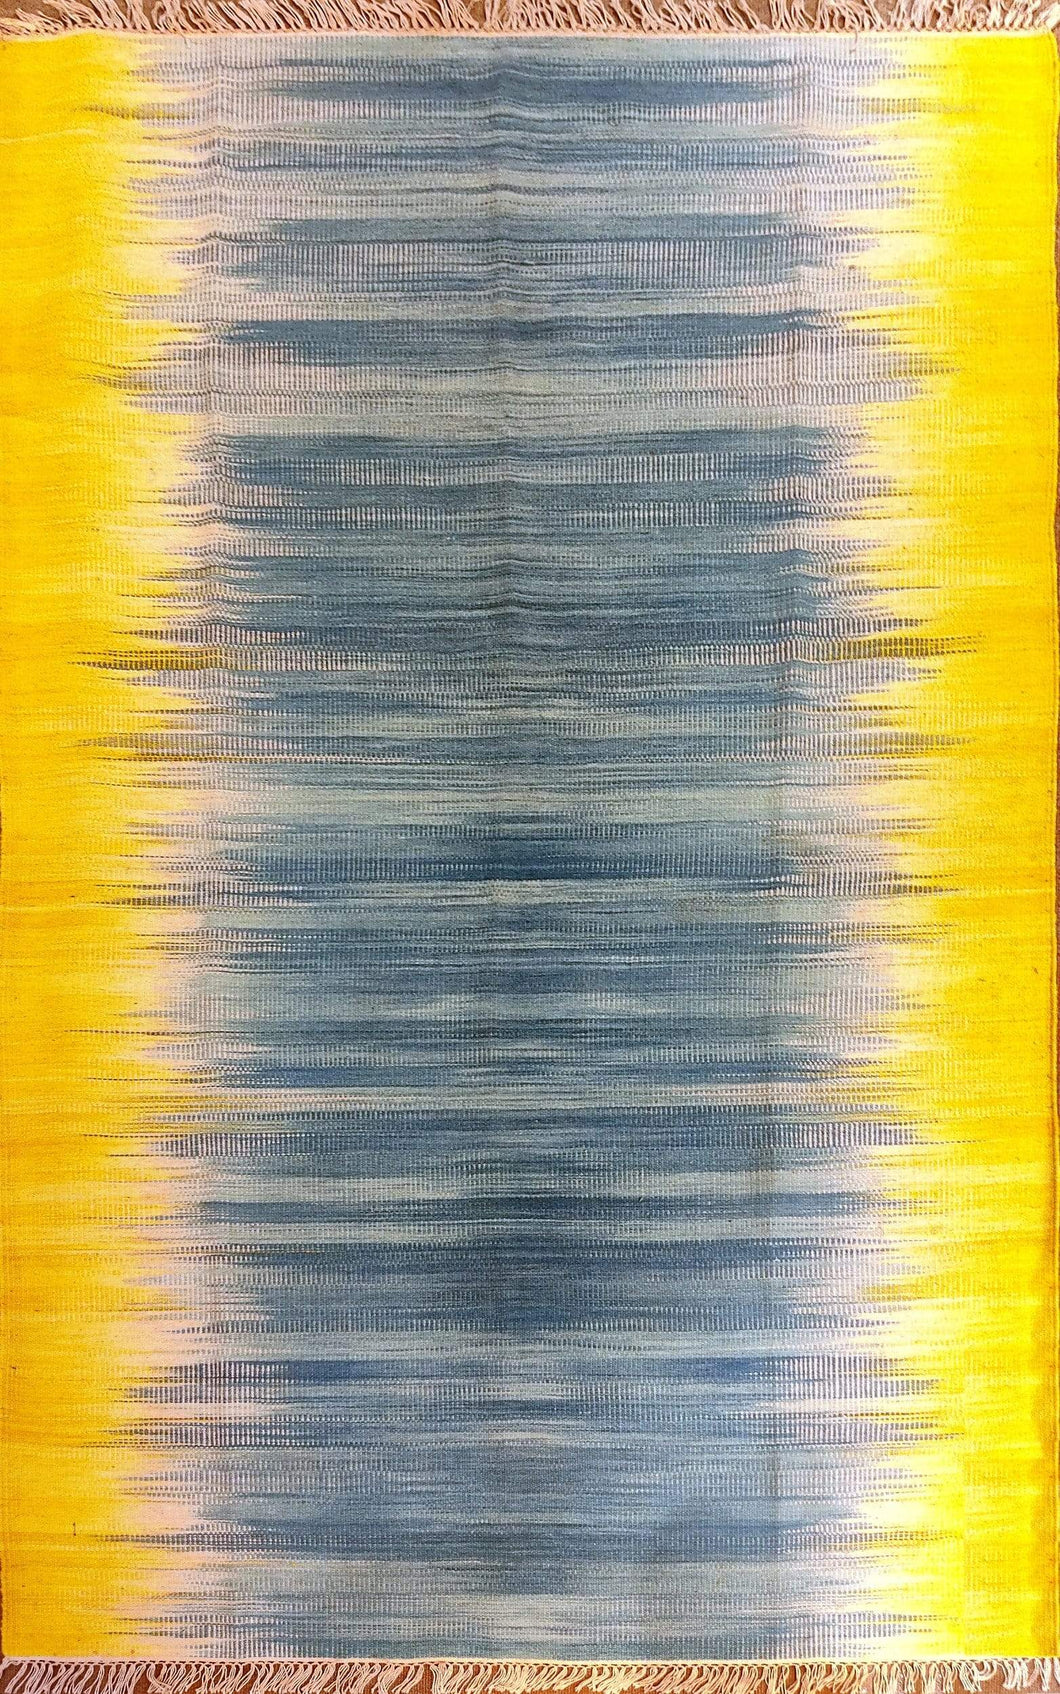 The Rugs Cafe Dhurries 3x5 / Yellow & Blue Blurred Lines Minimalist Design Faded with Transitional White Flat Weave Rug (Handmade)